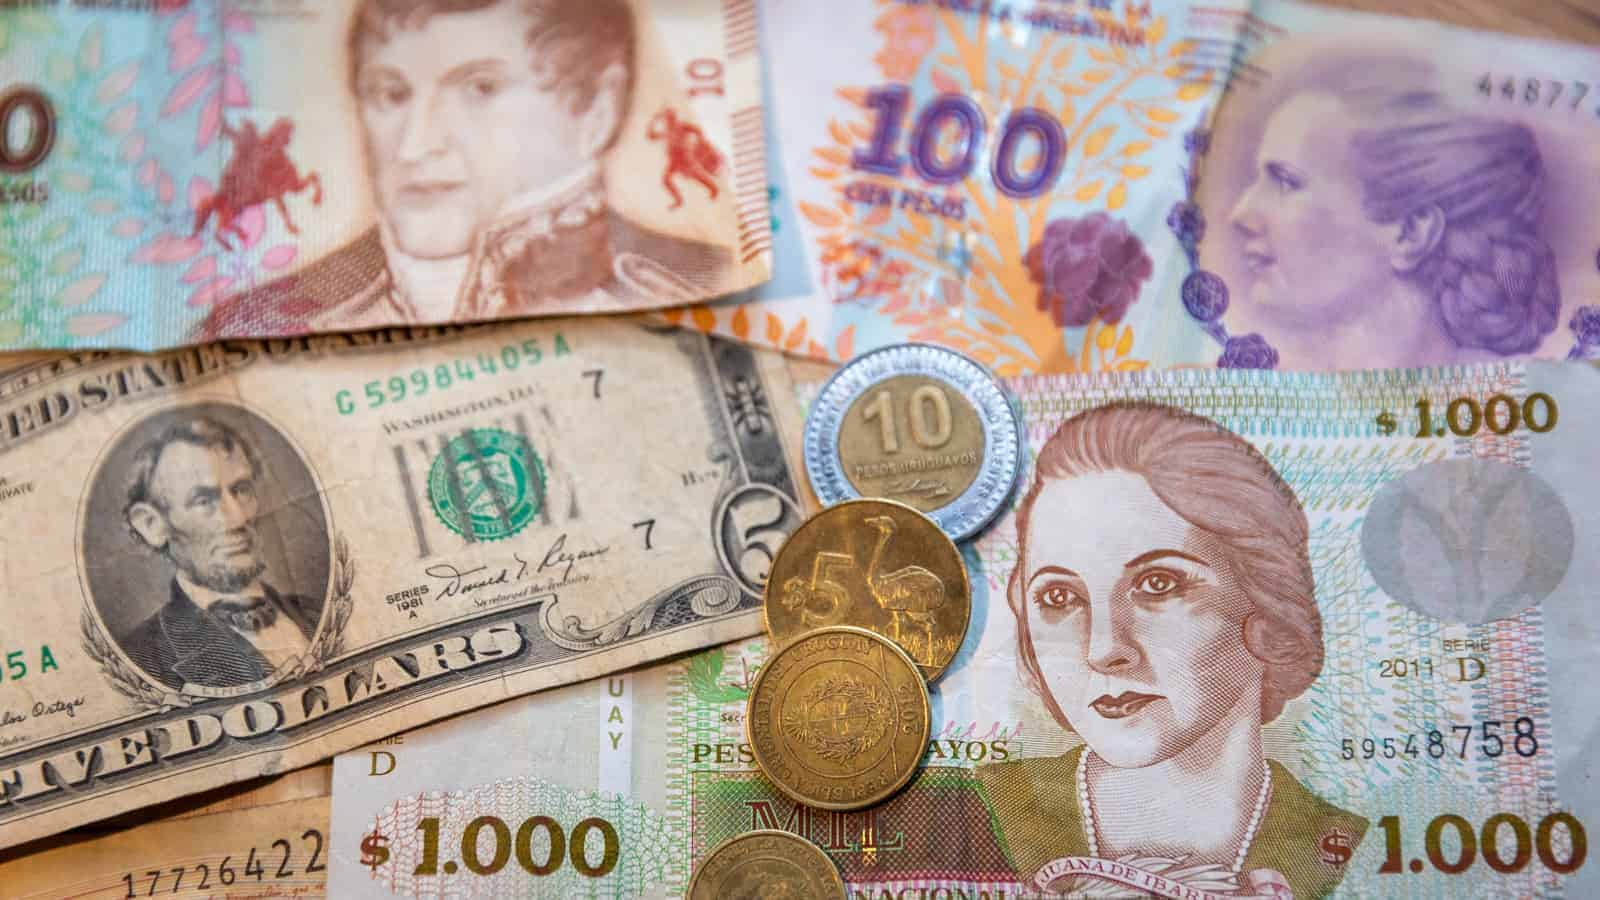 How much does overlanding cost - image of foreign currency